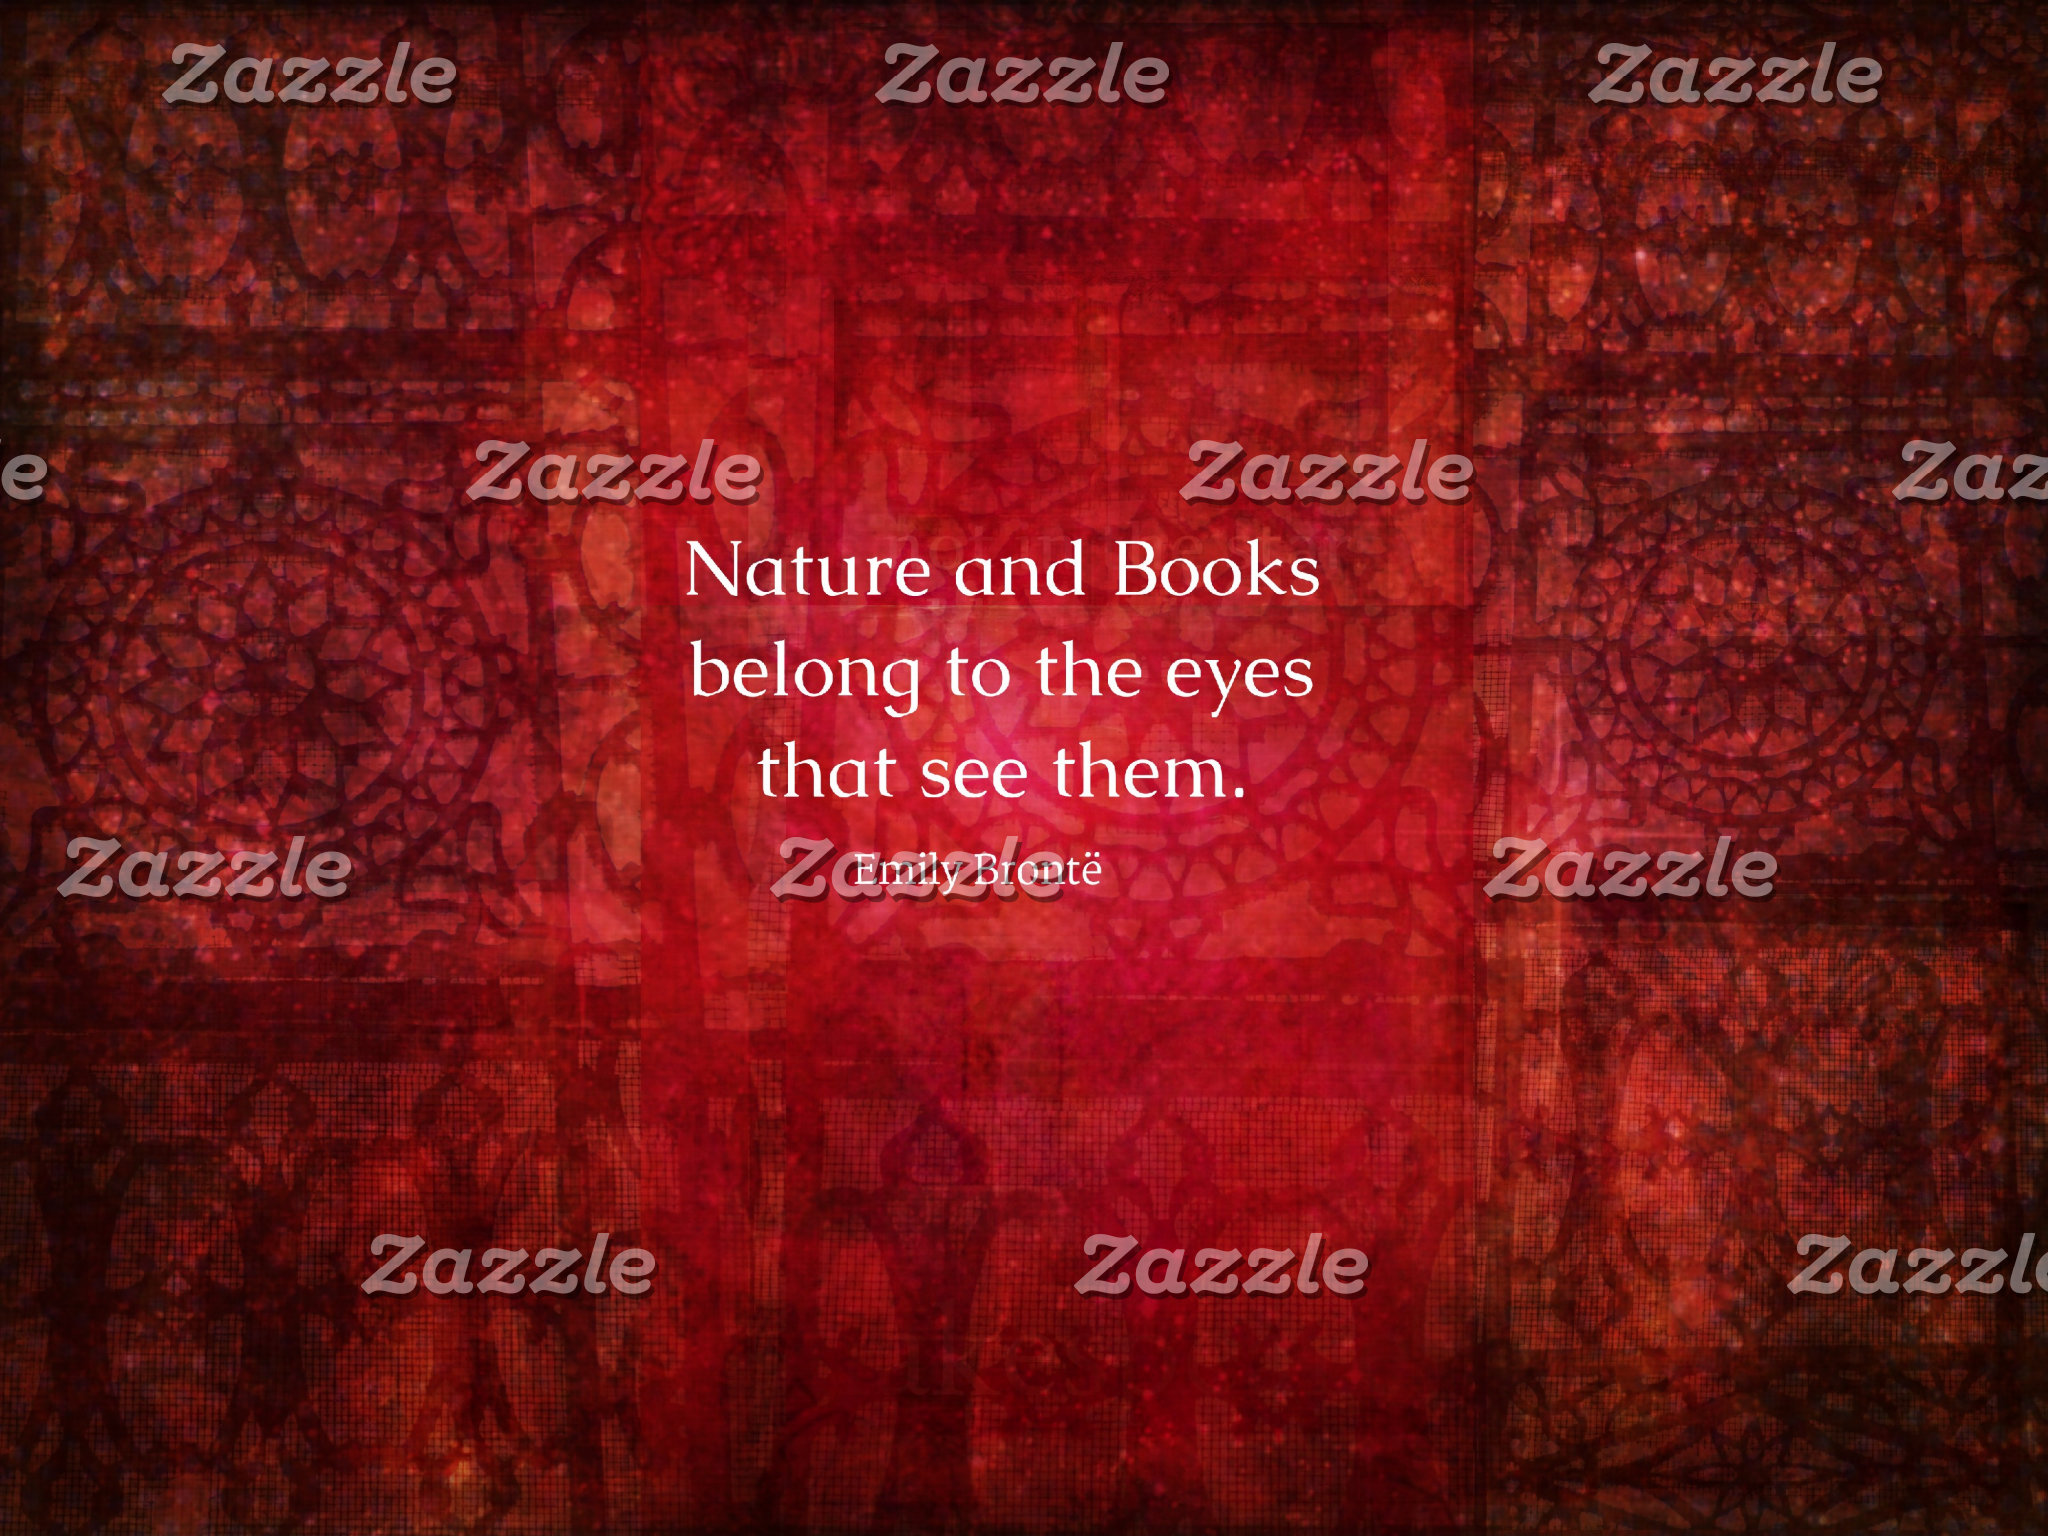 Nature and Books belong to the eyes that see them